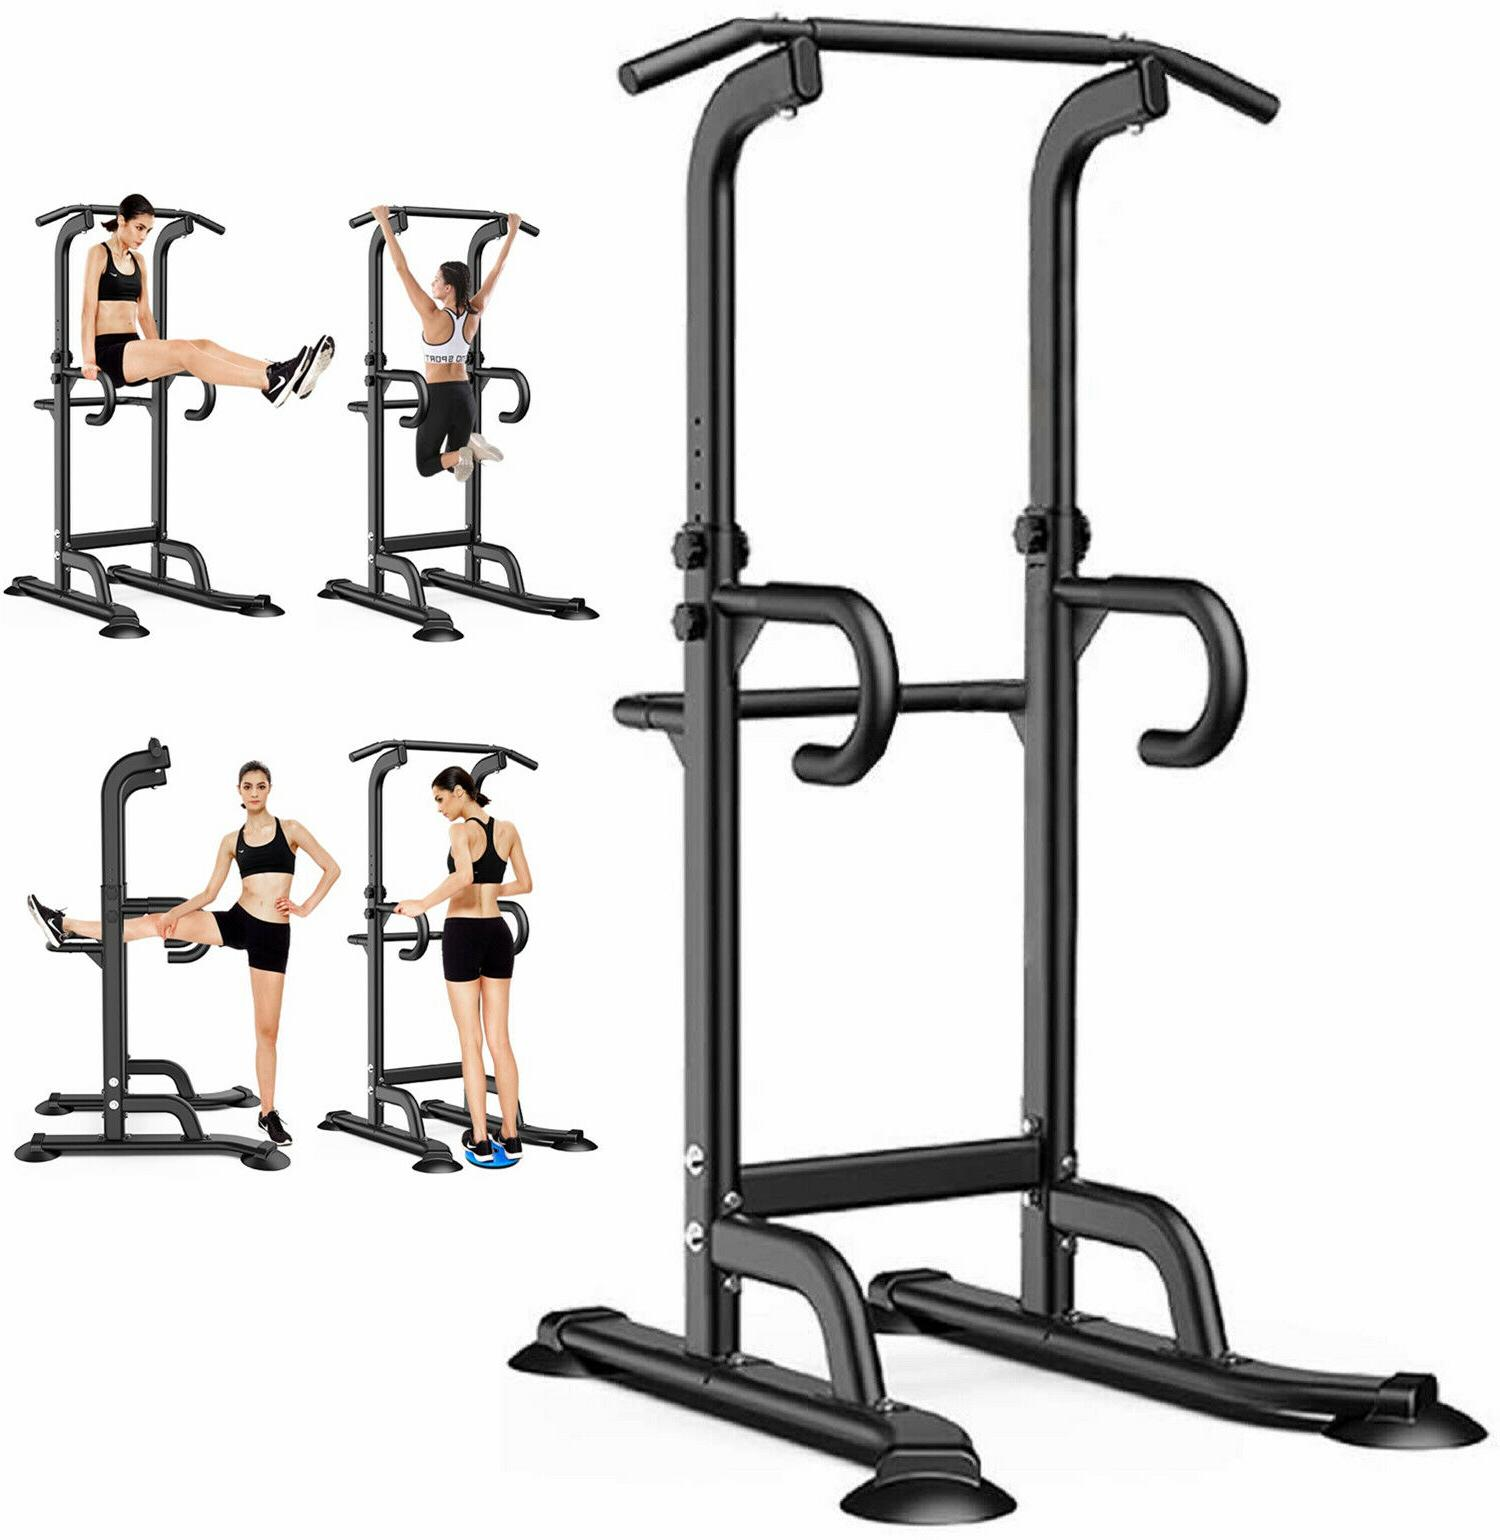 LB Power Pull-up Fitness Equipment Multi functional Home Gym Up